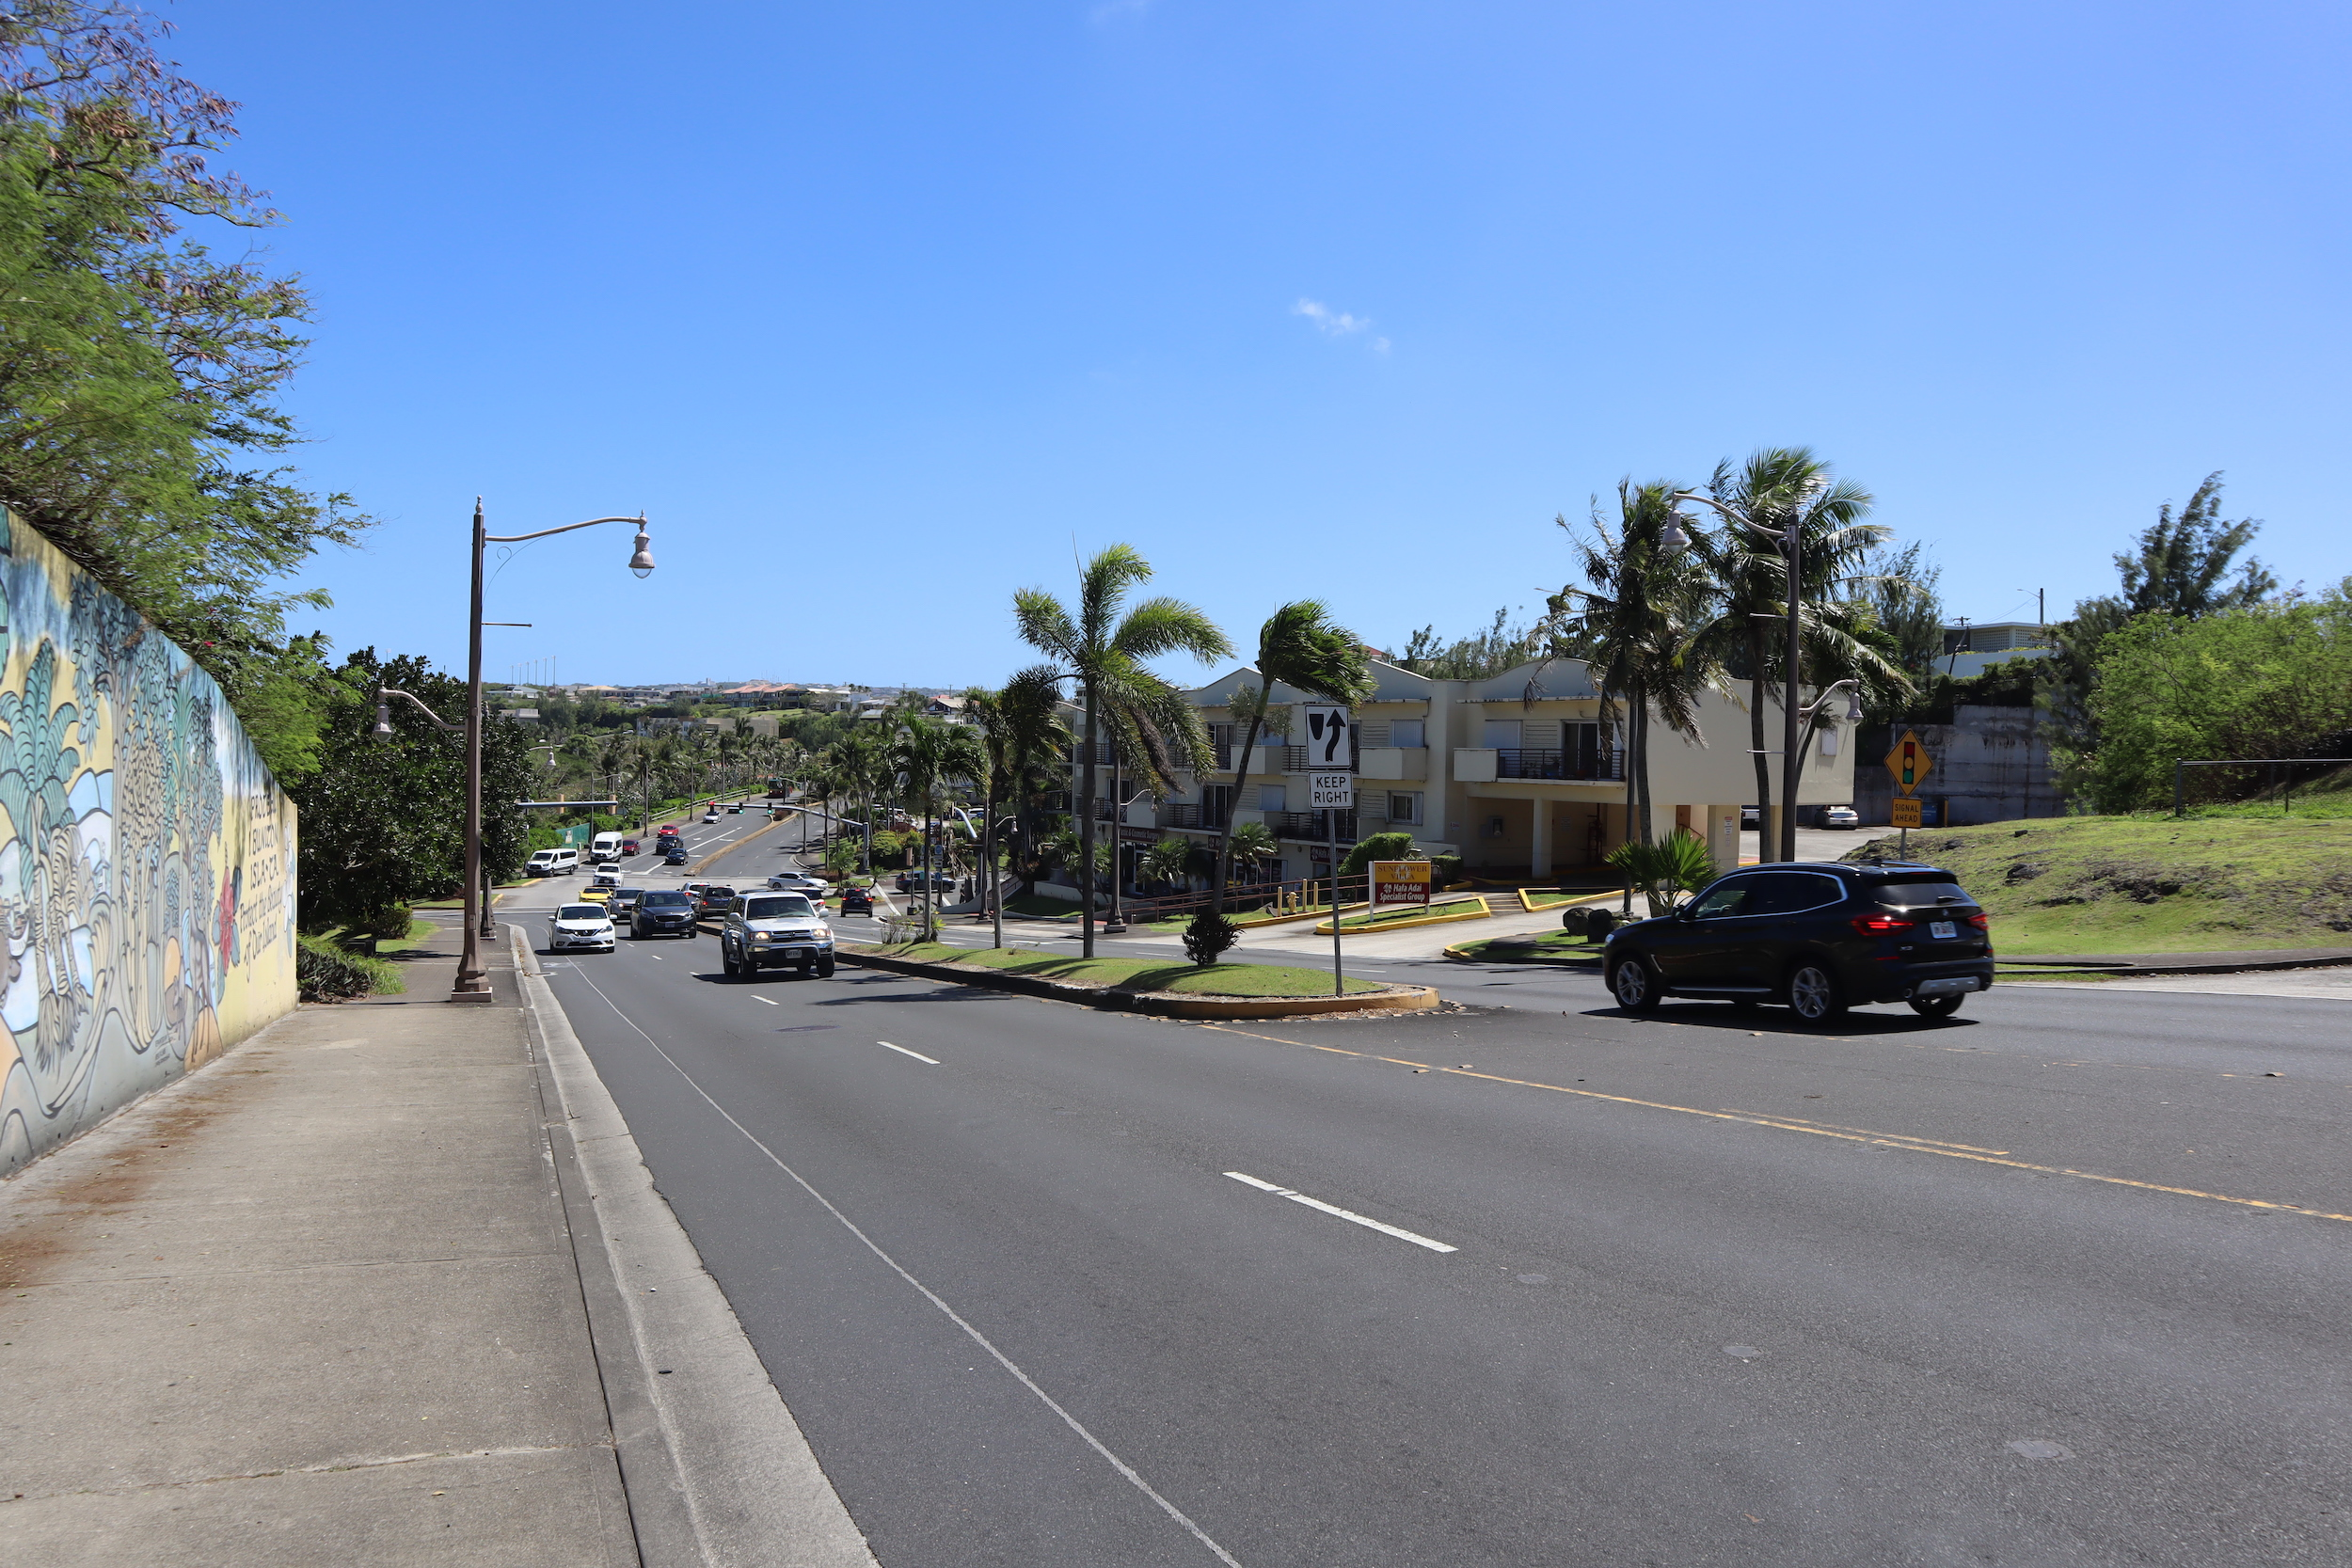 Street scene near Tumon Beach